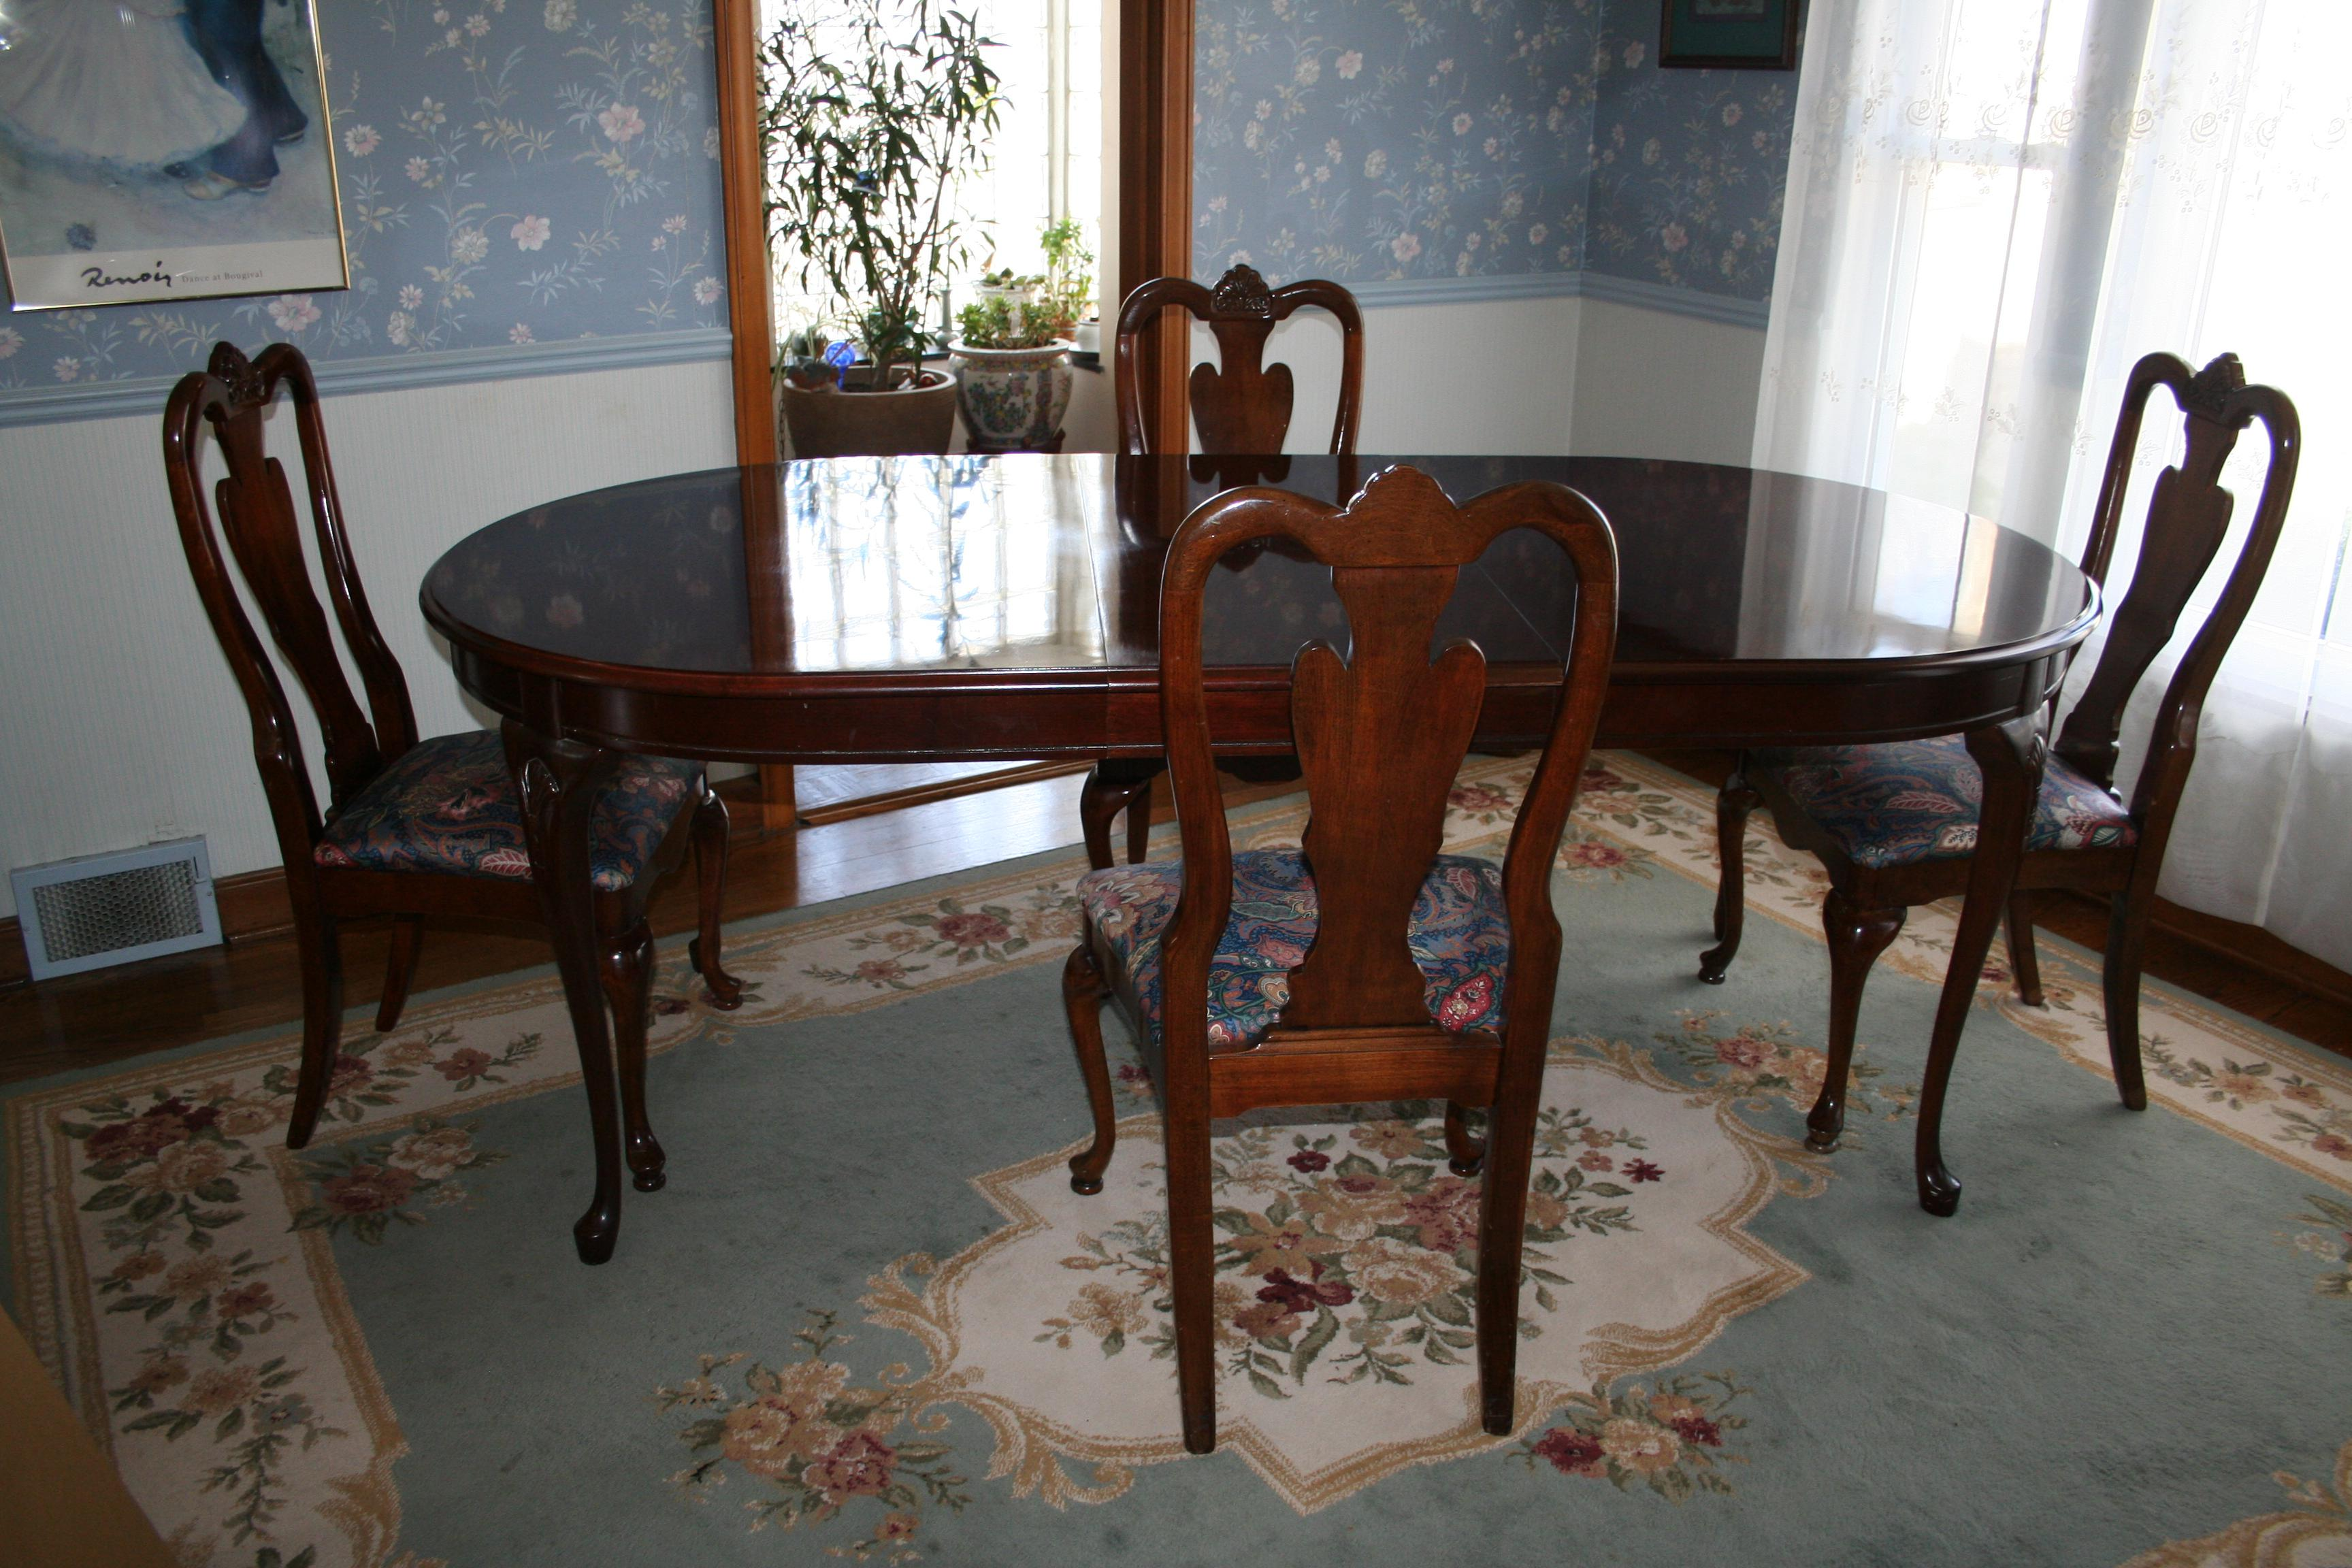 Excellent Condition Queen Anne Dining Room Table And Four Chairs By Bassett  Furniture. The Solid